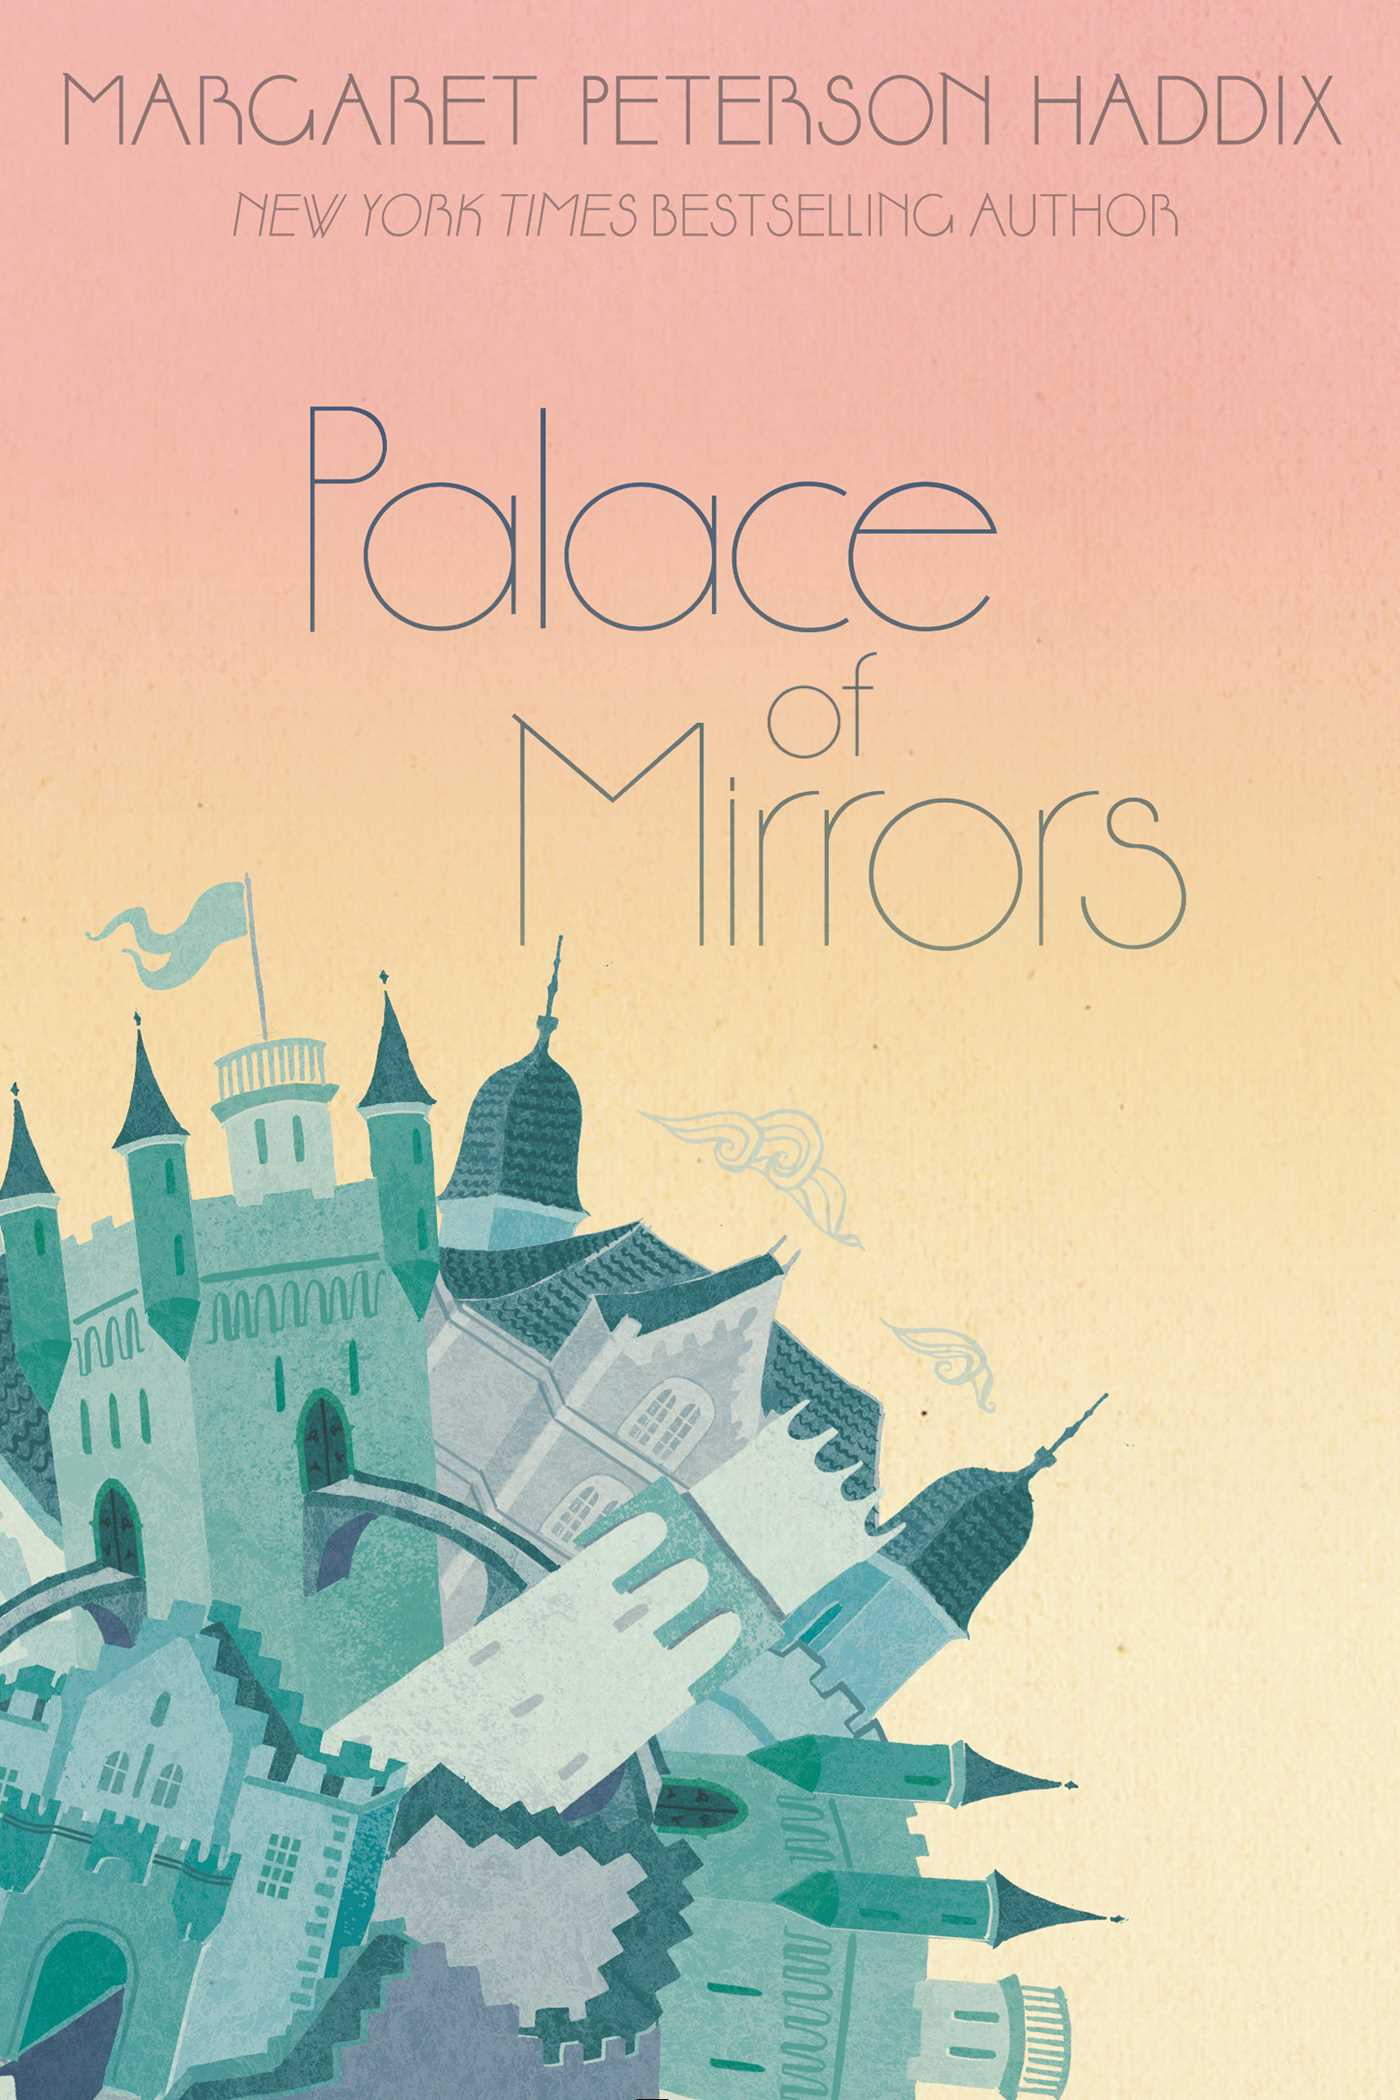 Palace-of-mirrors-9781442402508_hr